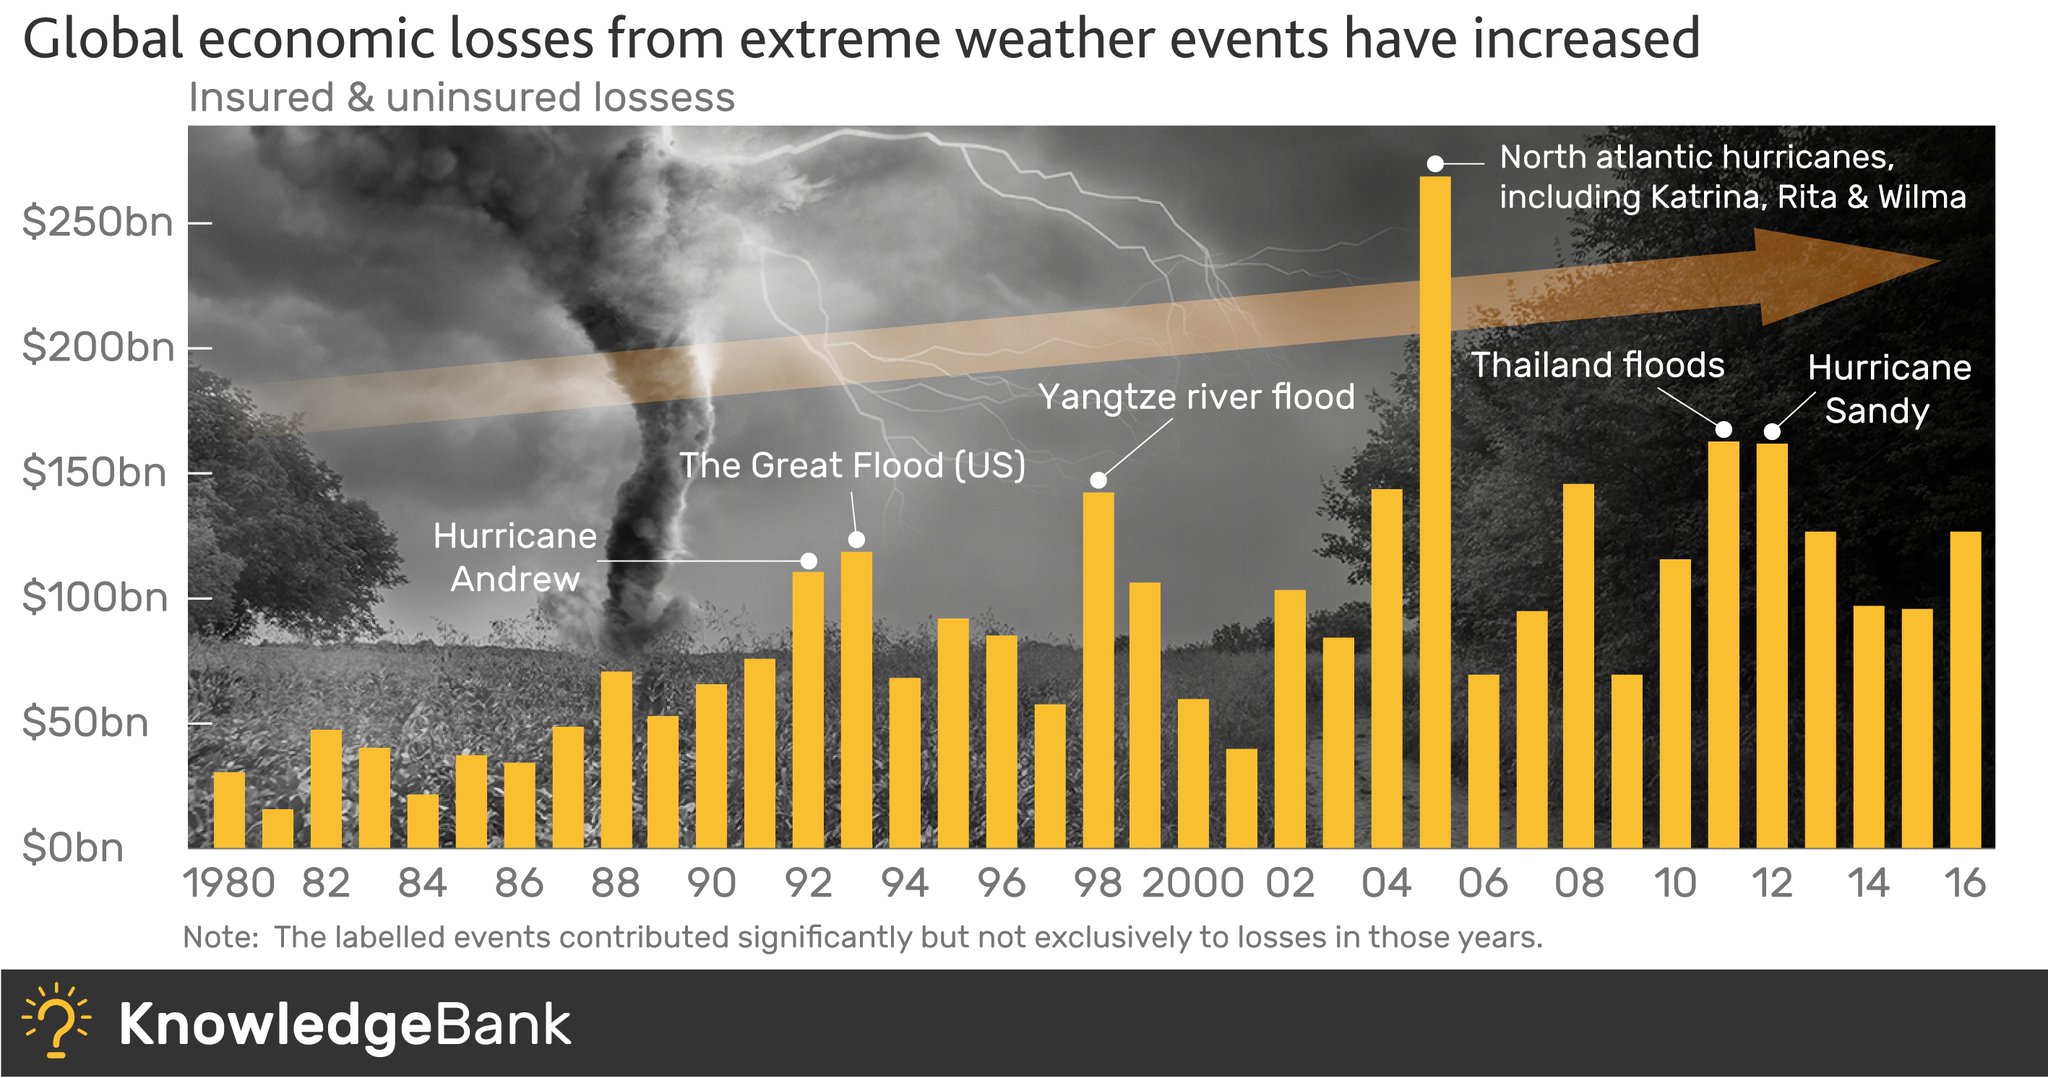 How does the rise in extreme weather events affect the economy? https://t.co/V4DGxAfBib #BoEknowledgebank https://t.co/8sDnve3XVK